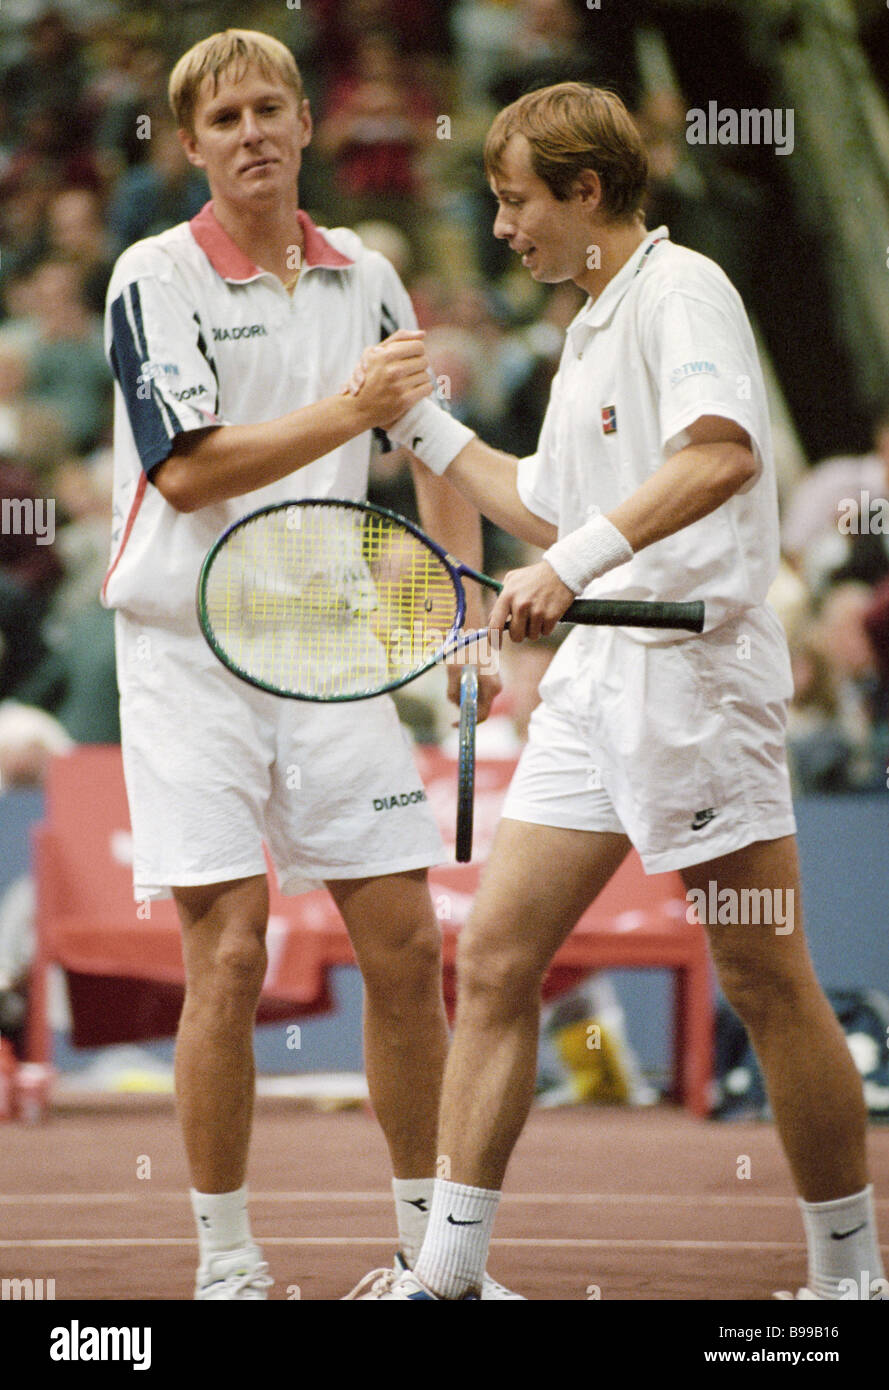 Tennis players Yevgeny Kafelnikov left and Andrei Olkhovsky during